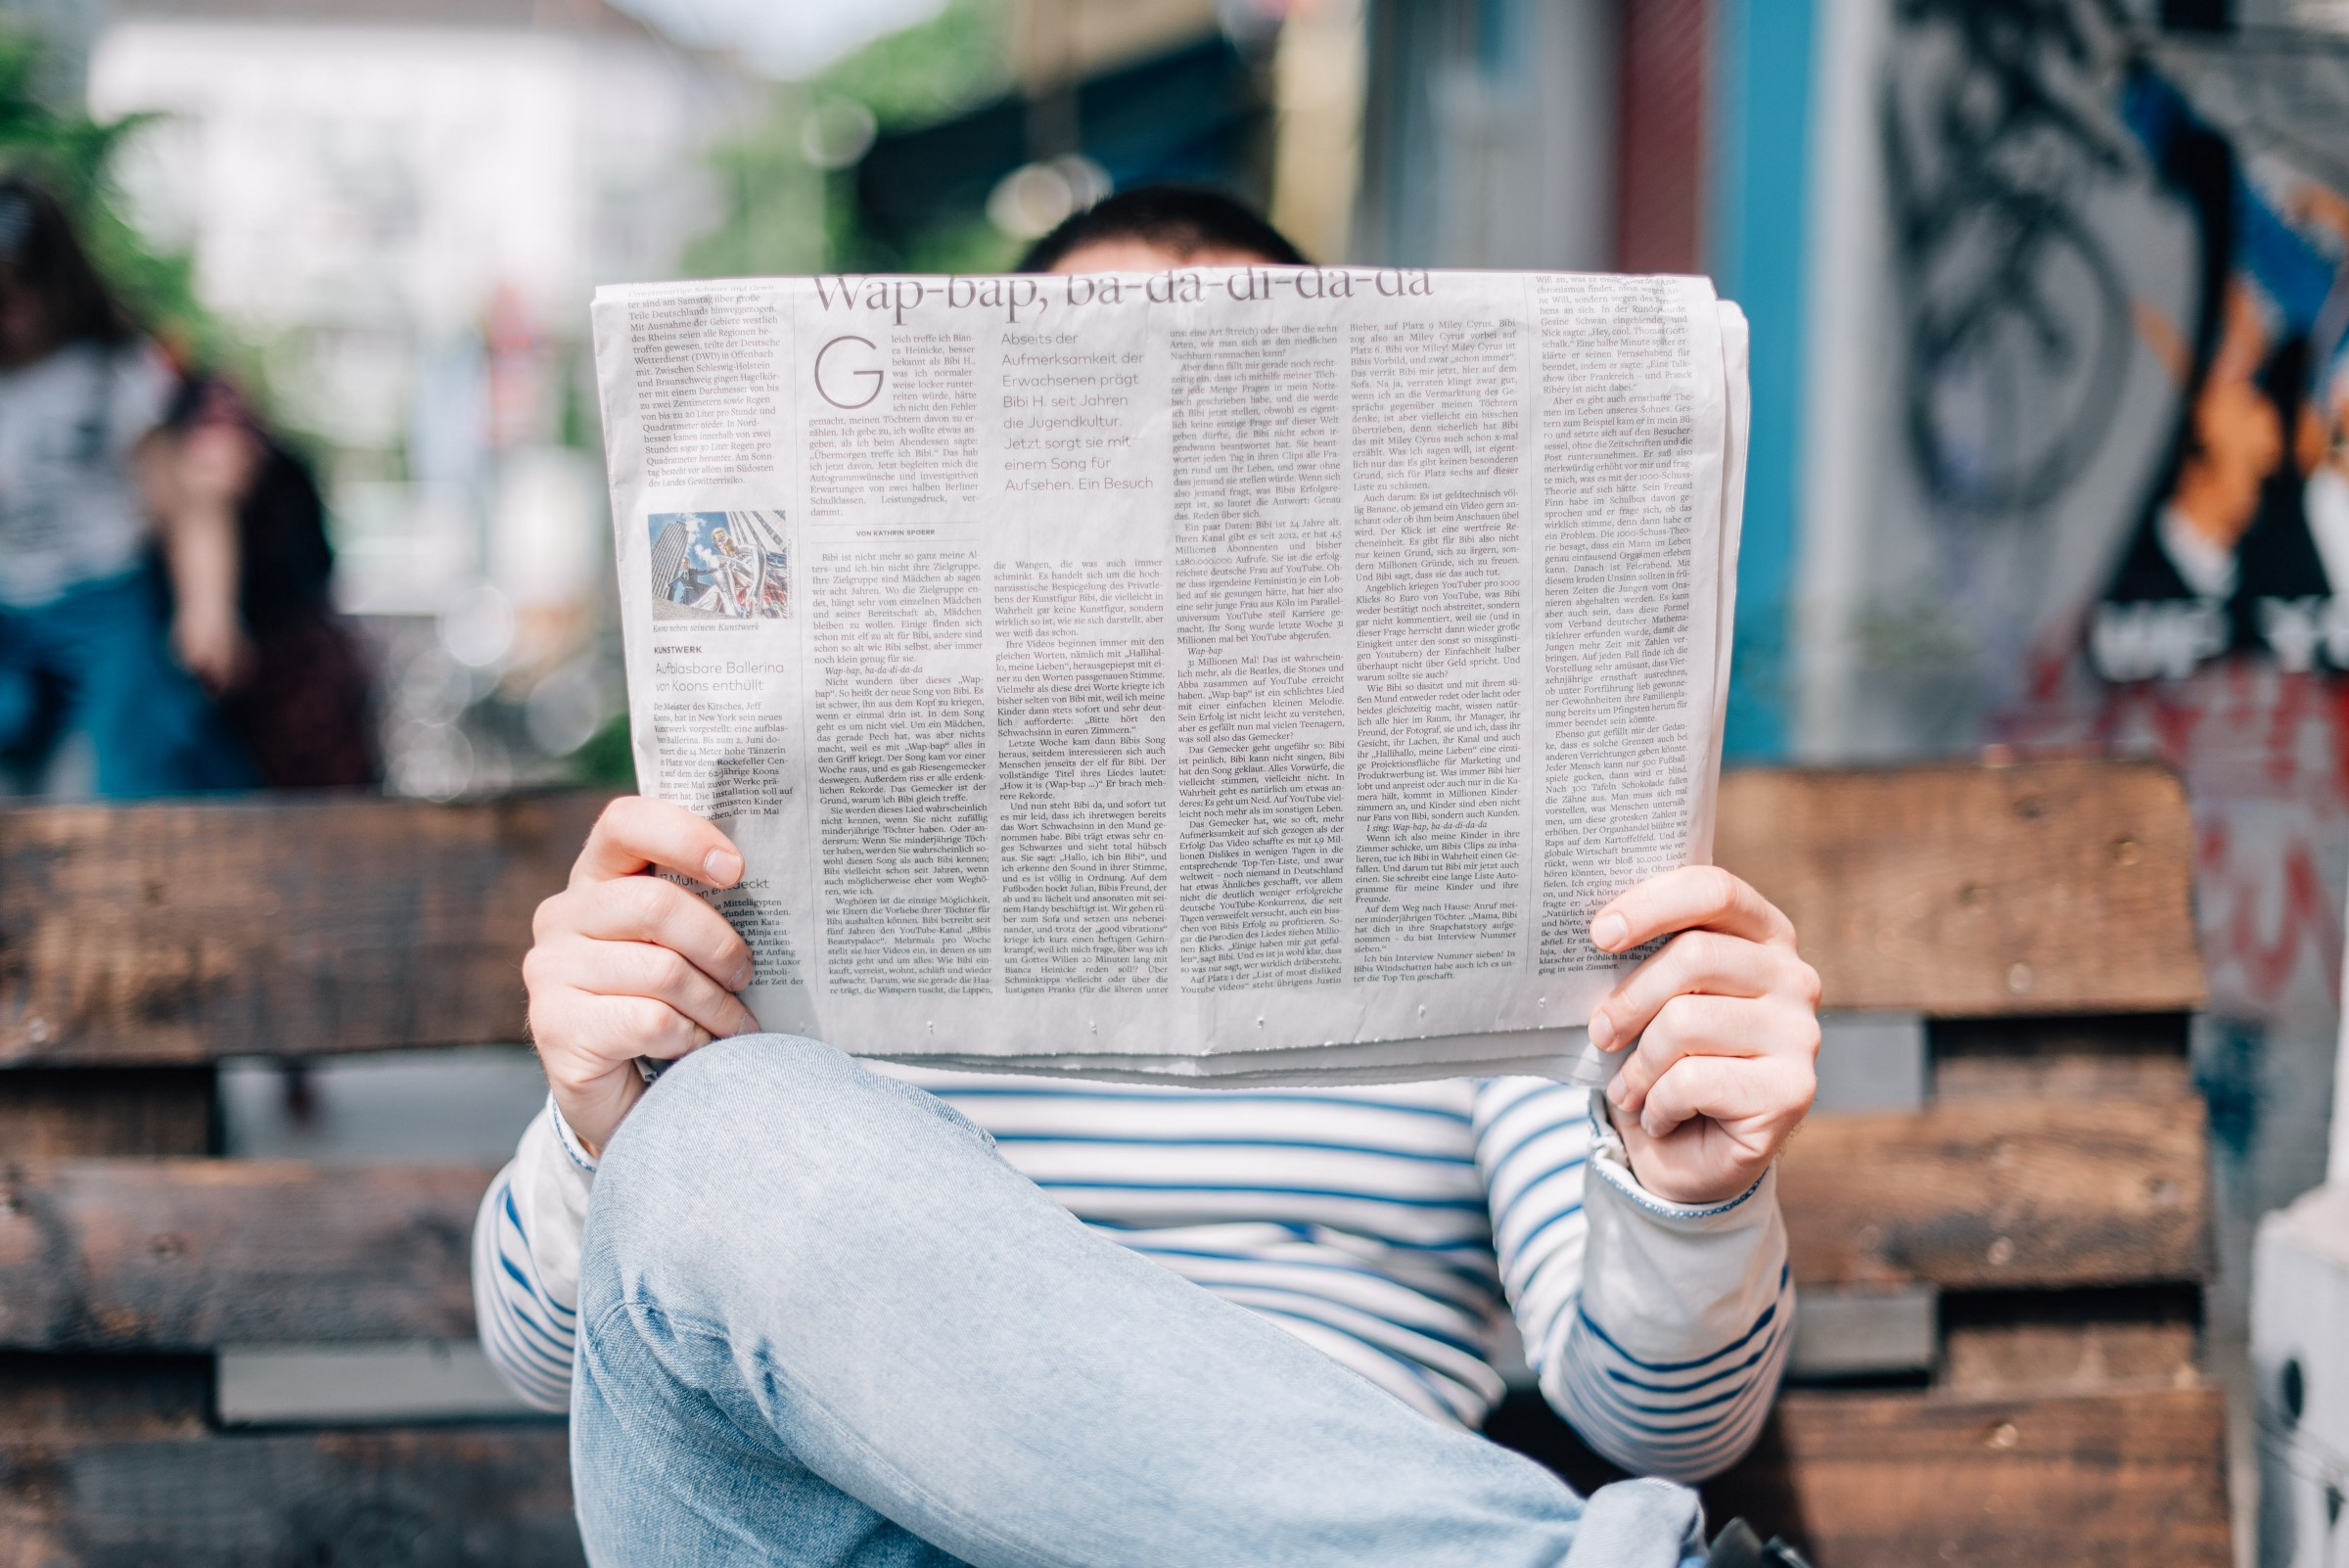 /why-the-newspaper-is-mightier-than-the-blockchain-85318a9b8e93 feature image